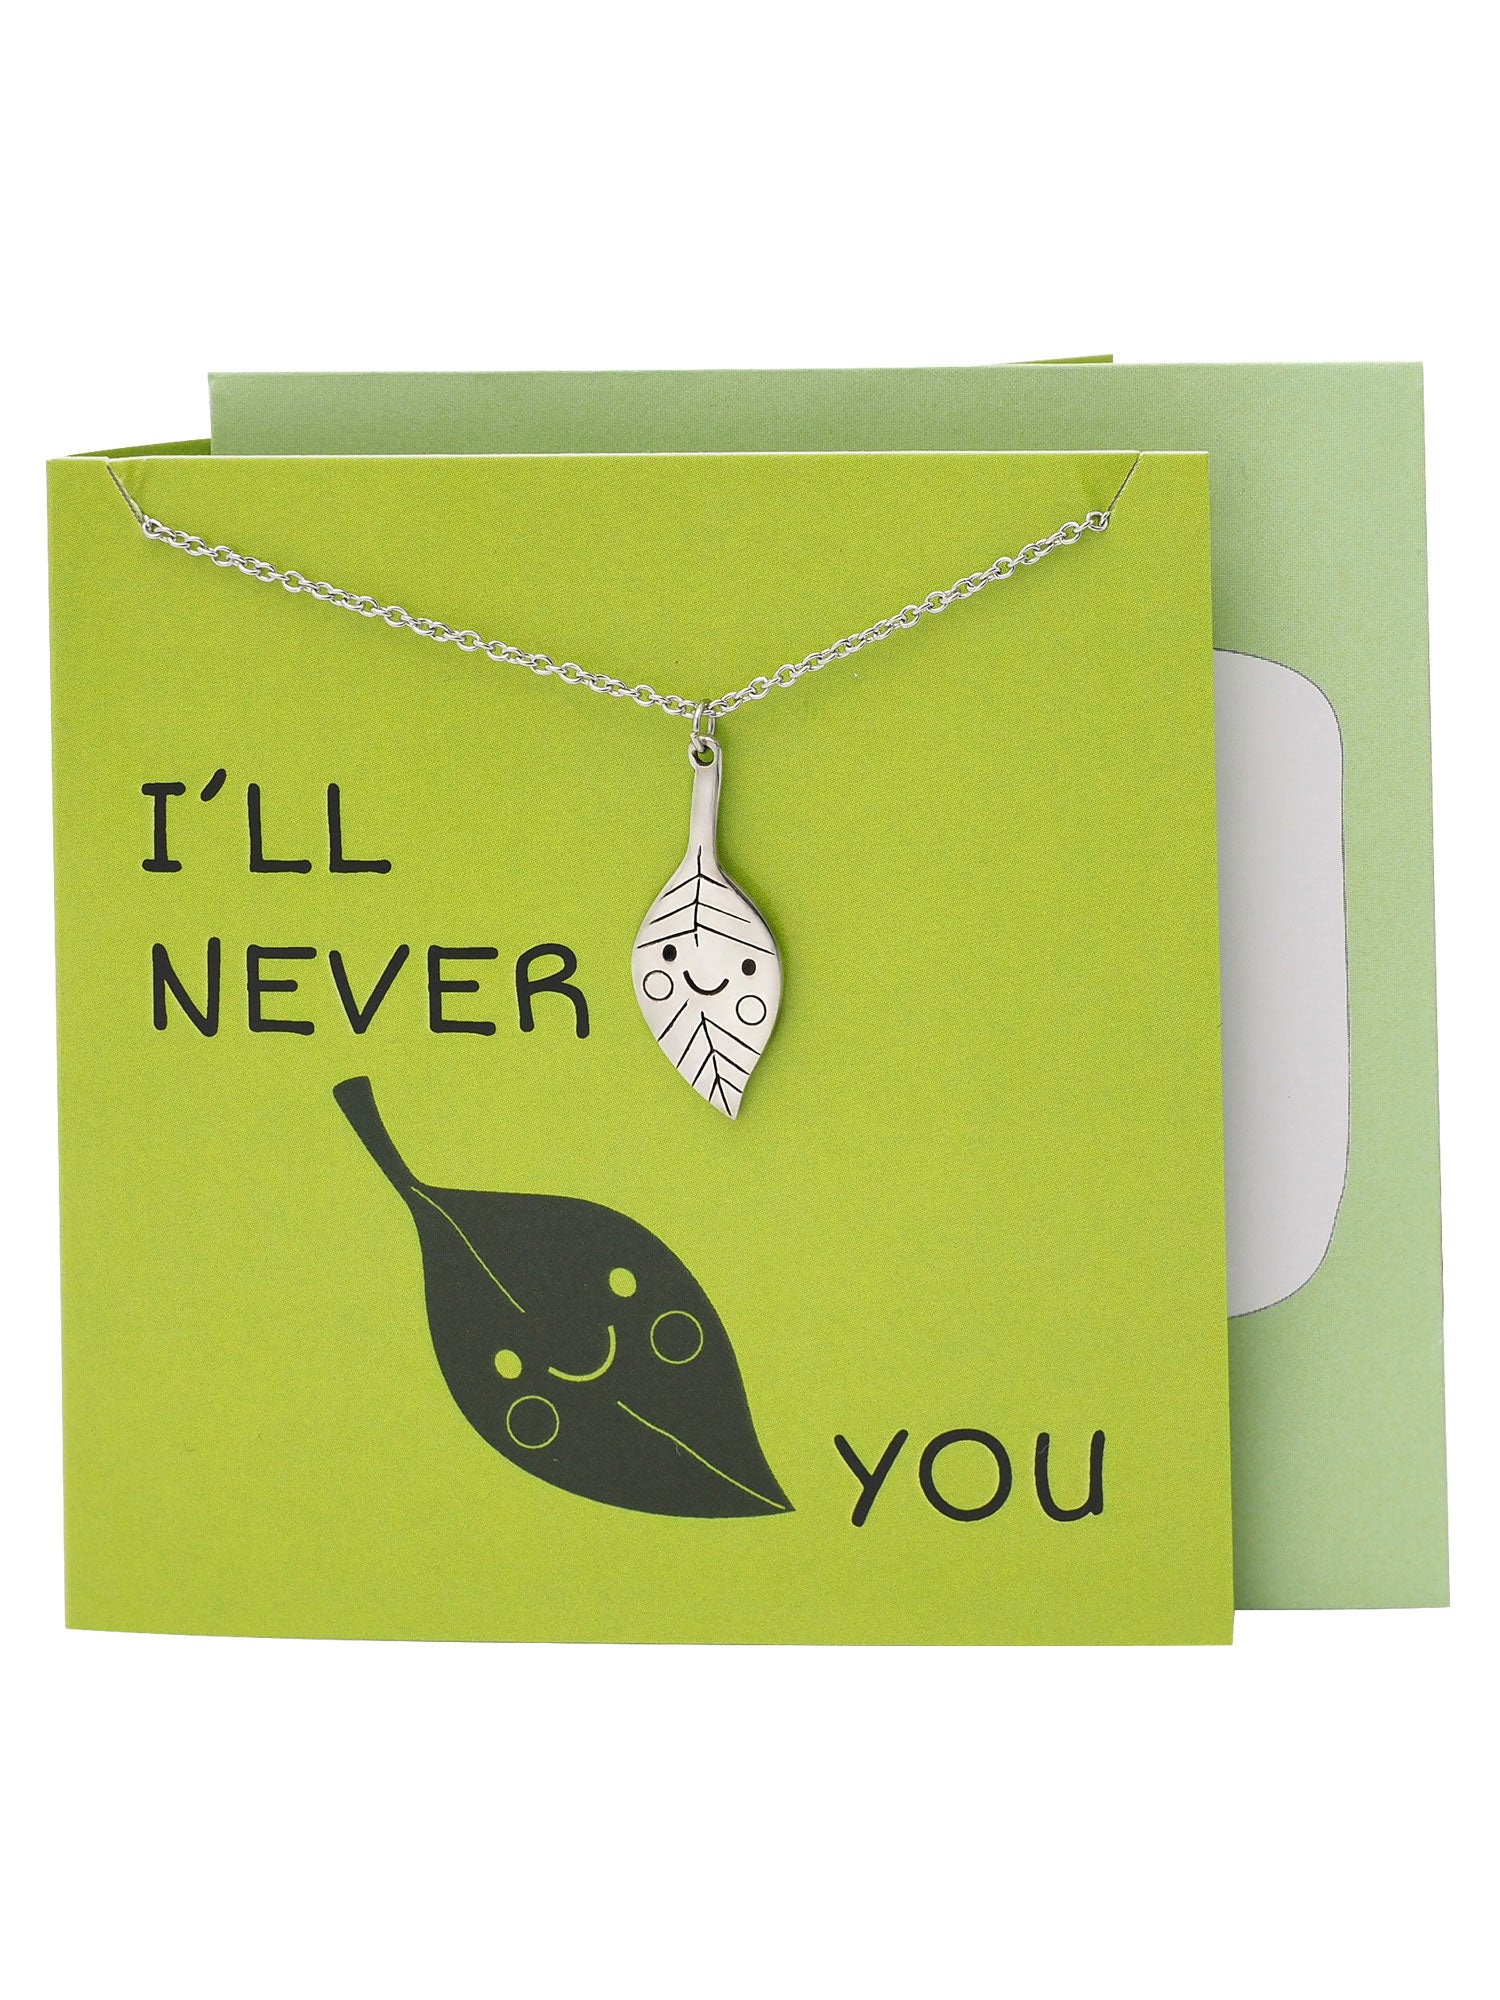 Leelo Leaf Necklace Funny Puns Greeting Cards I'll Never Leaf You